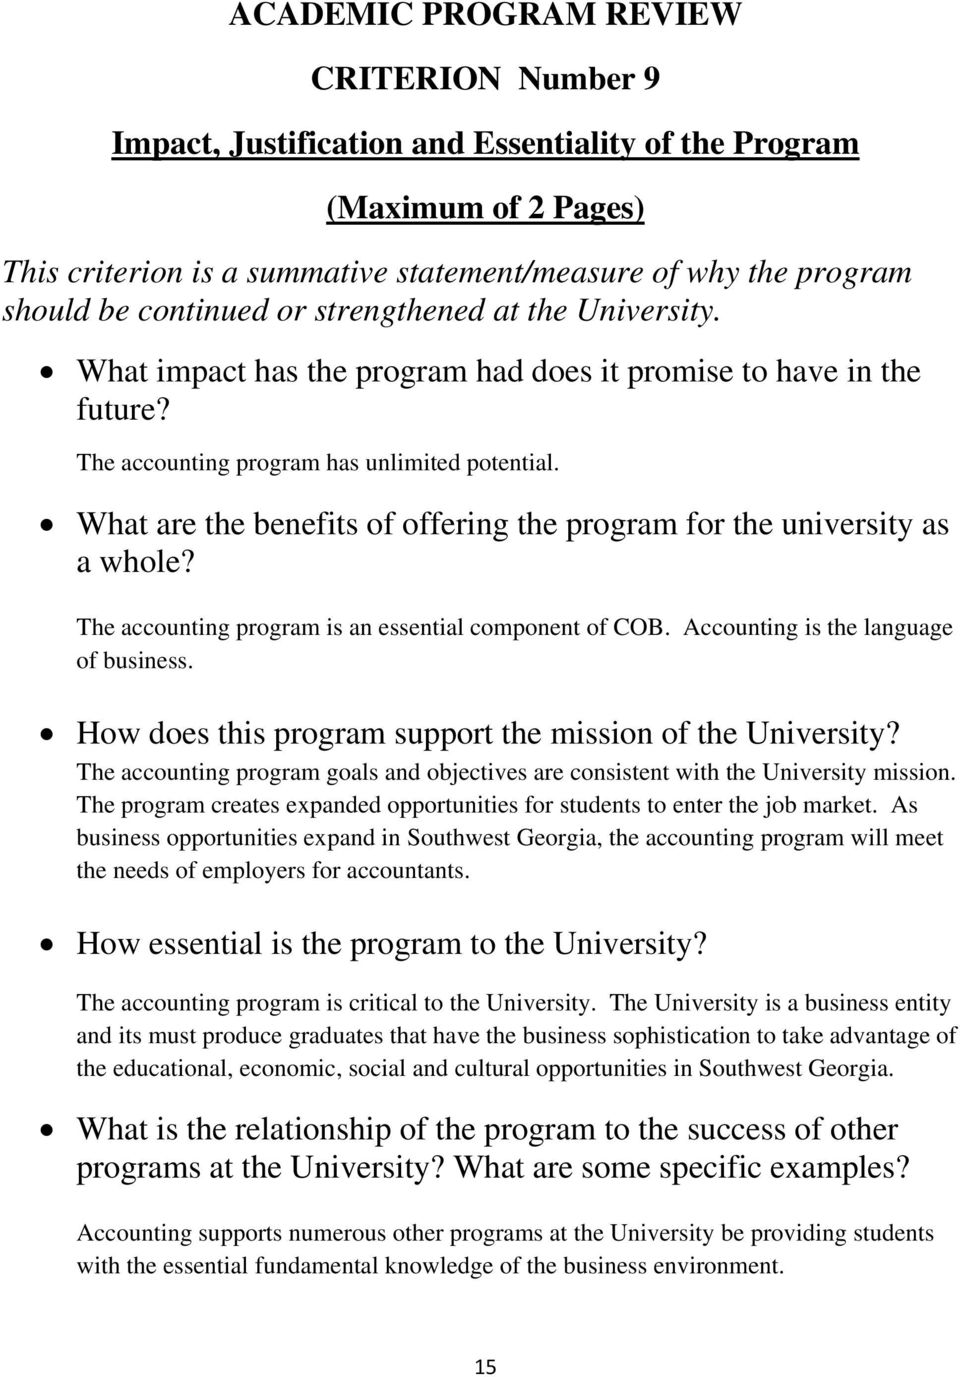 What are the benefits of offering the program for the university as a whole? The accounting program is an essential component of COB. Accounting is the language of business.